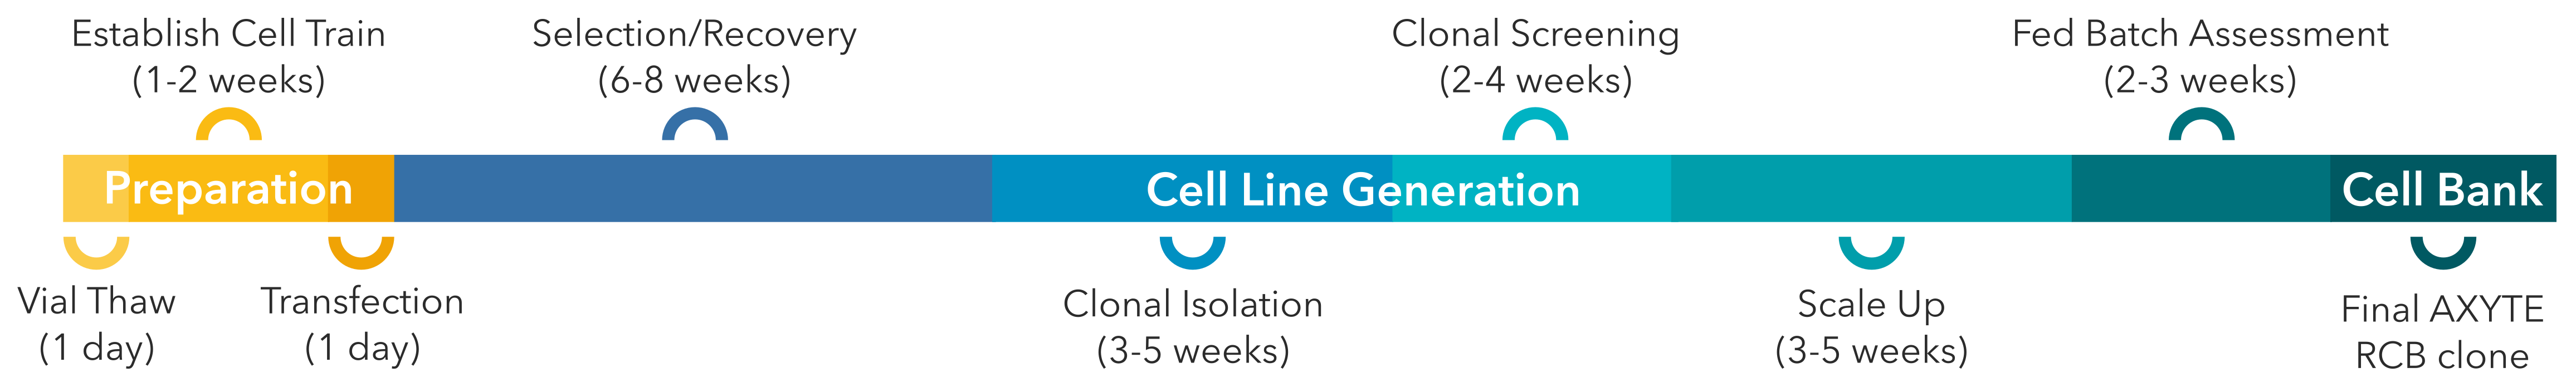 Timeline of AXYTE cell line development